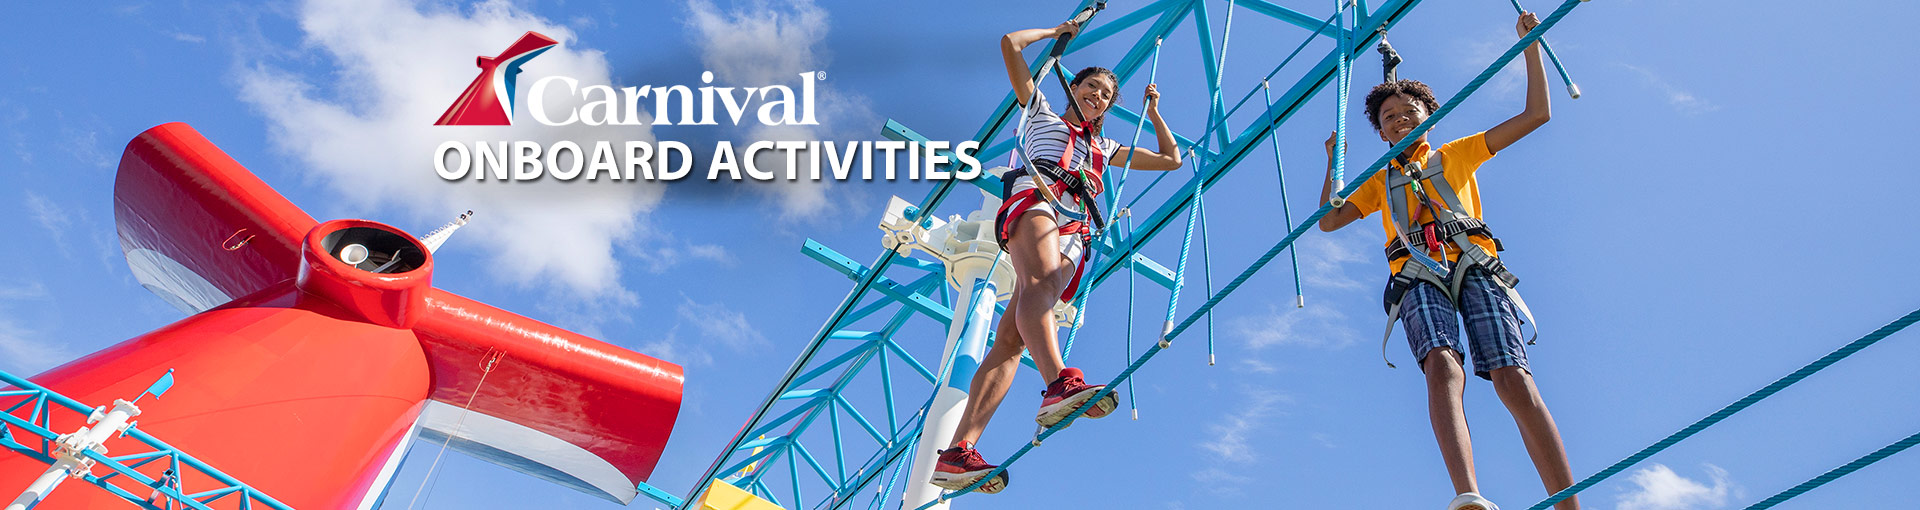 Carnival Cruise Line Onboard Activities